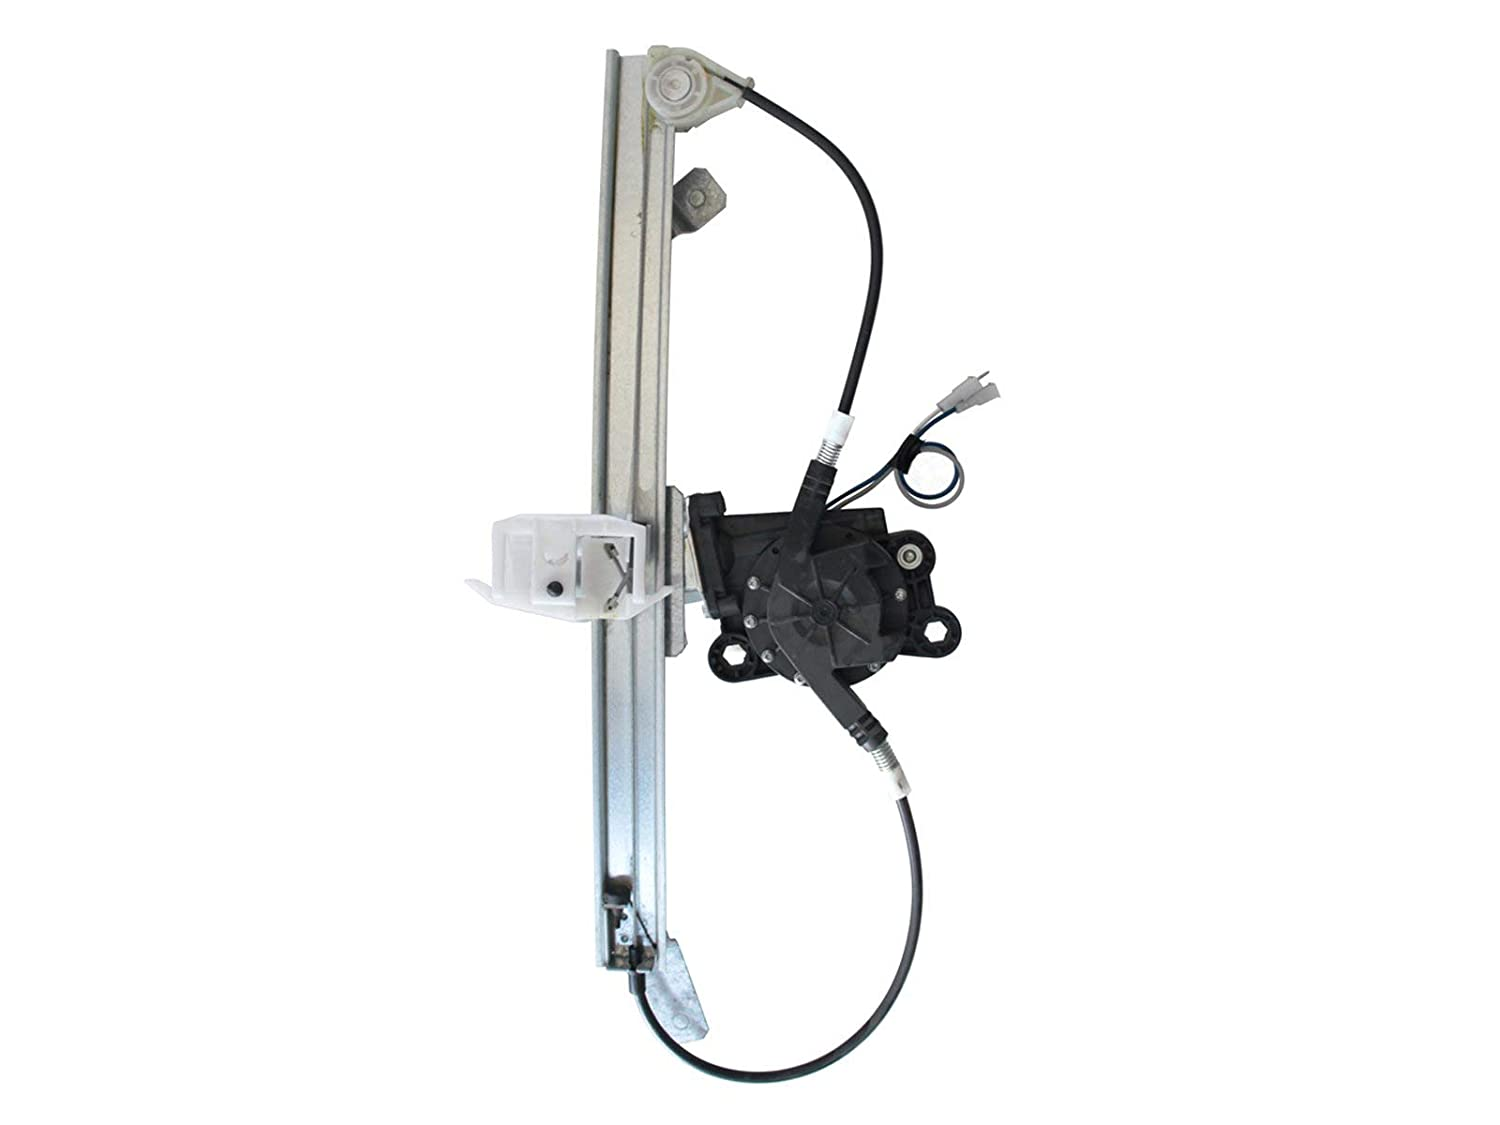 Rear Right Electric Window Regulator (with motor) for RENAULT SCENIC 2003-2009 AC Rolcar